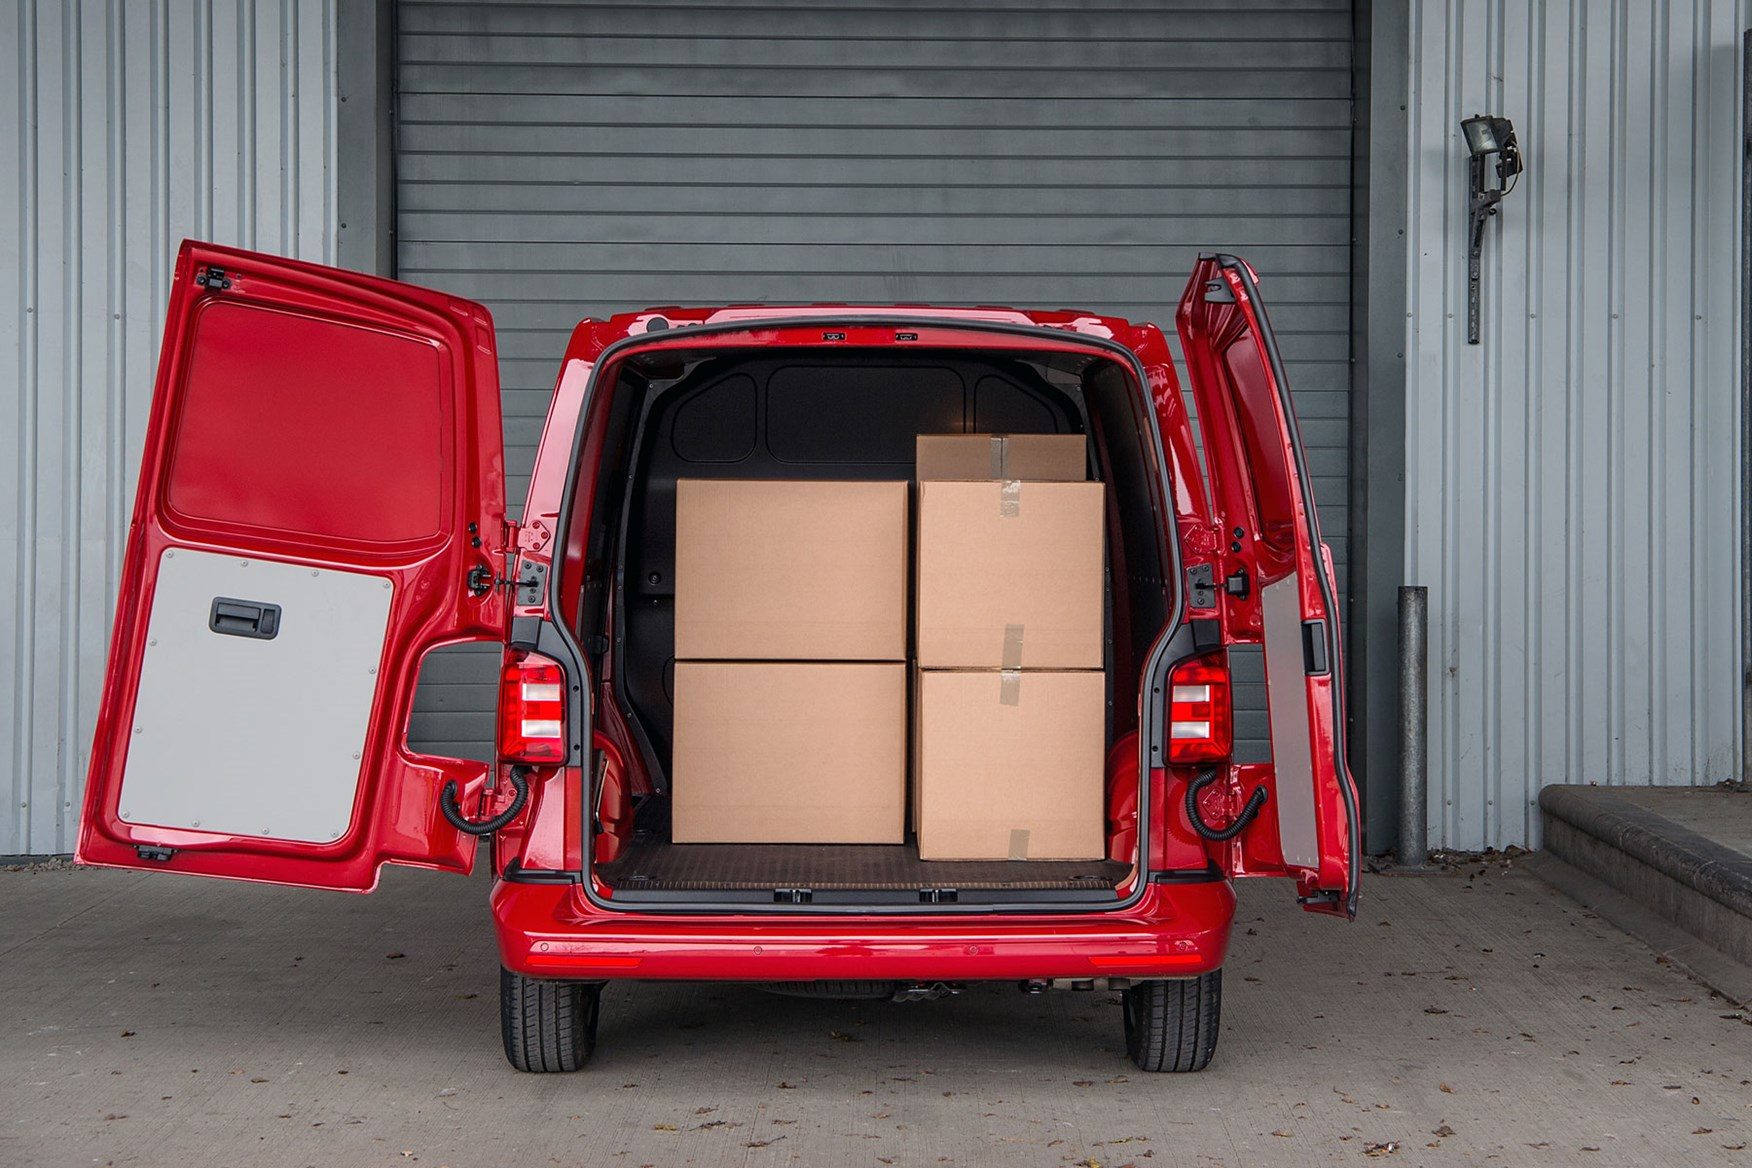 VW Transporter (2015-on) payload